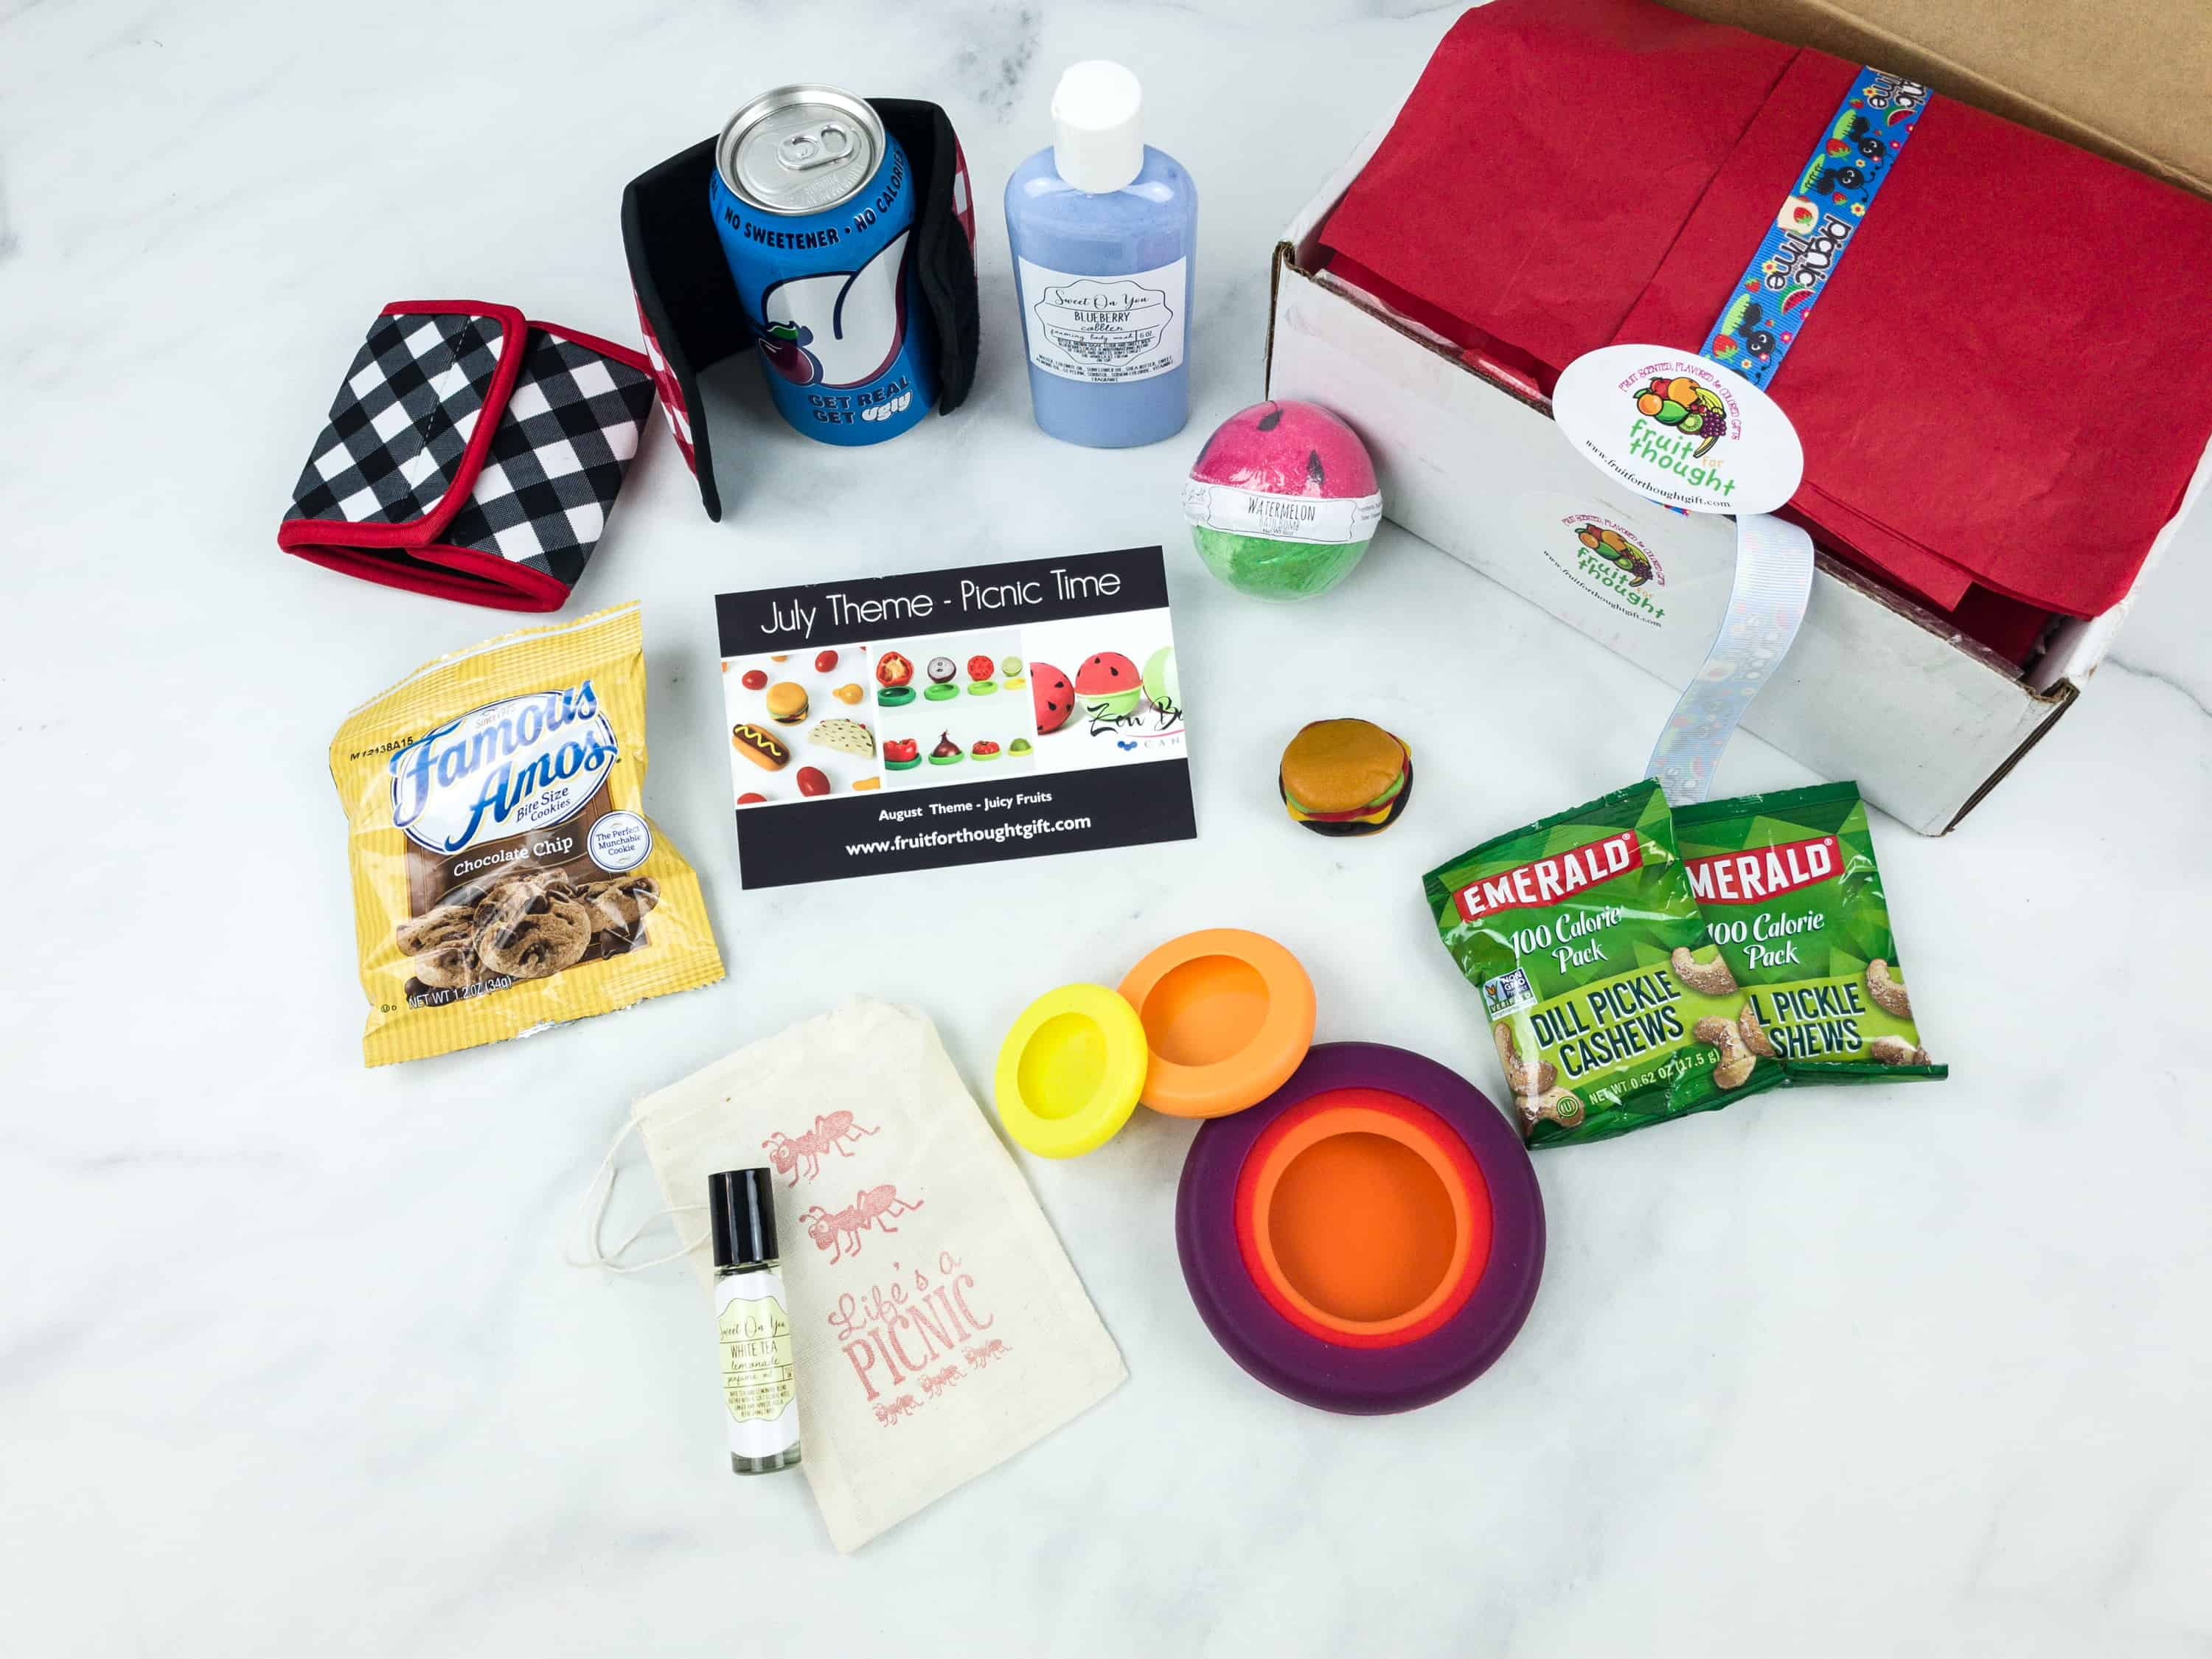 Fruit For Thought July 2018 Subscription Box Review & Coupon